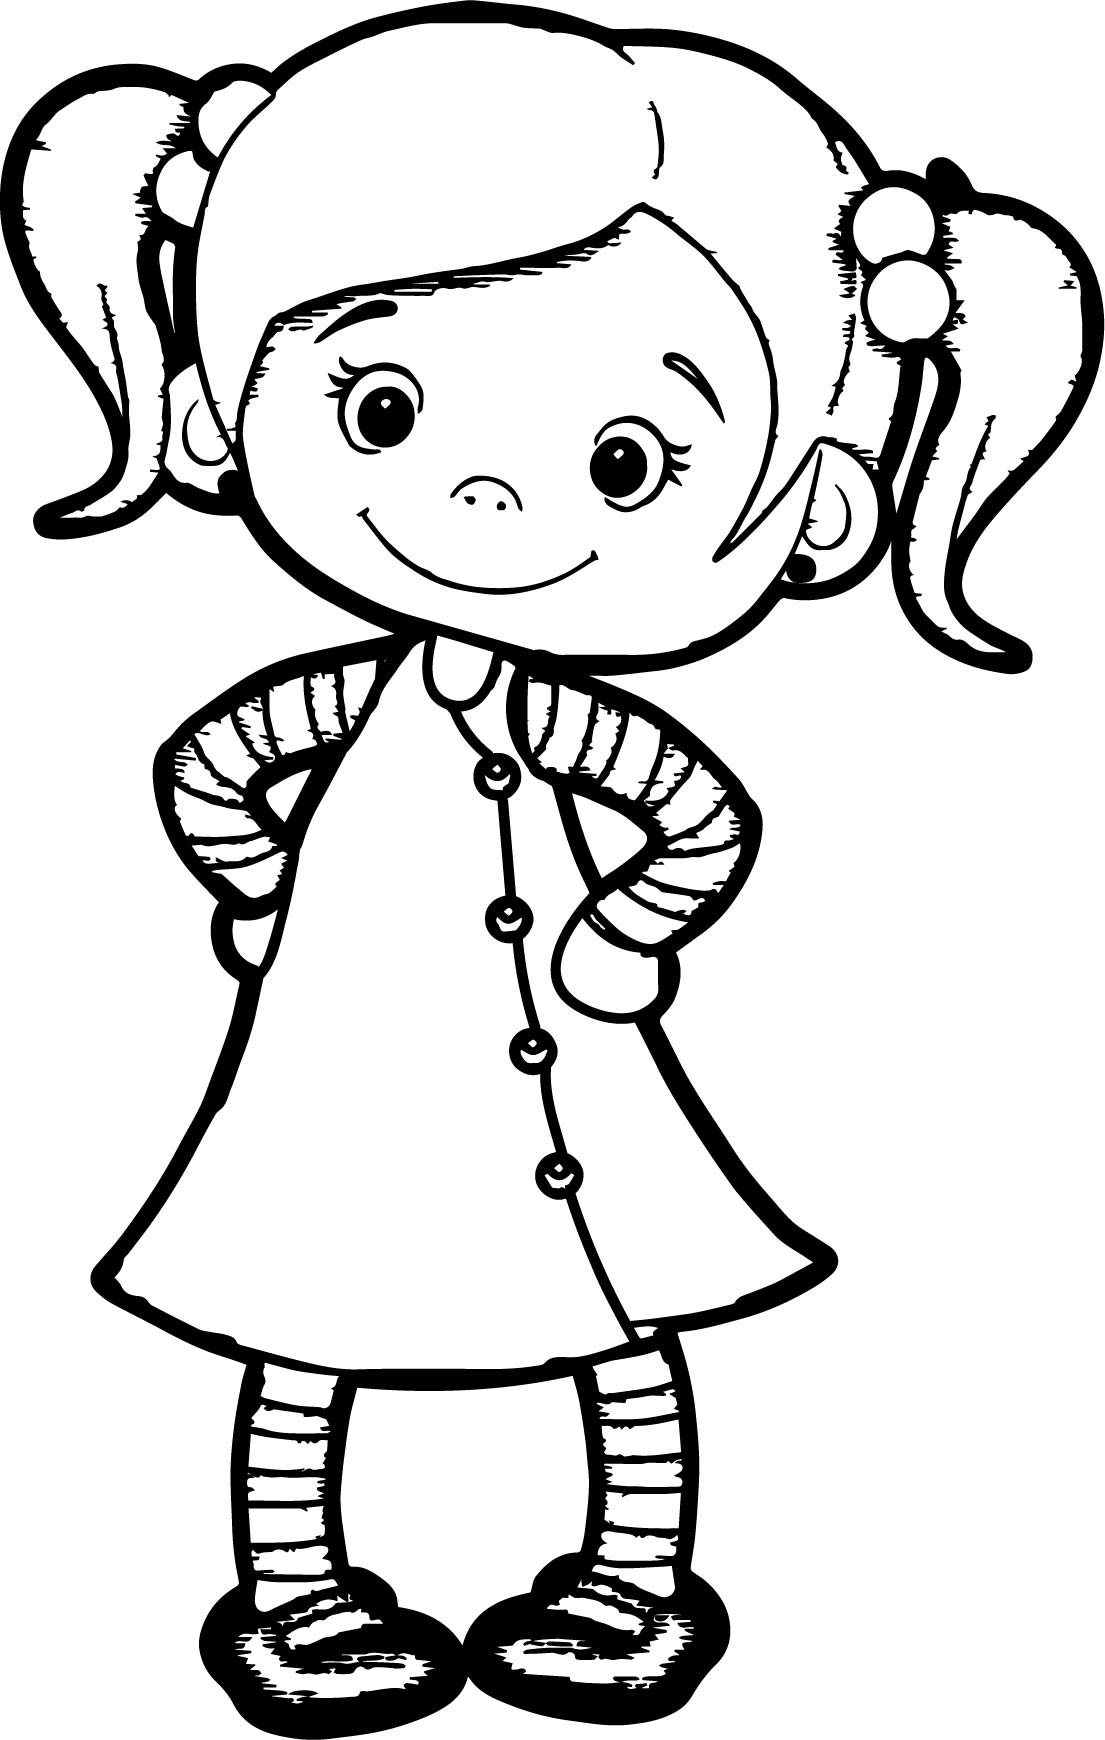 Best ideas about Happy Coloring Sheets For Girls . Save or Pin Cute Girl Cartoon Drawing at GetDrawings Now.